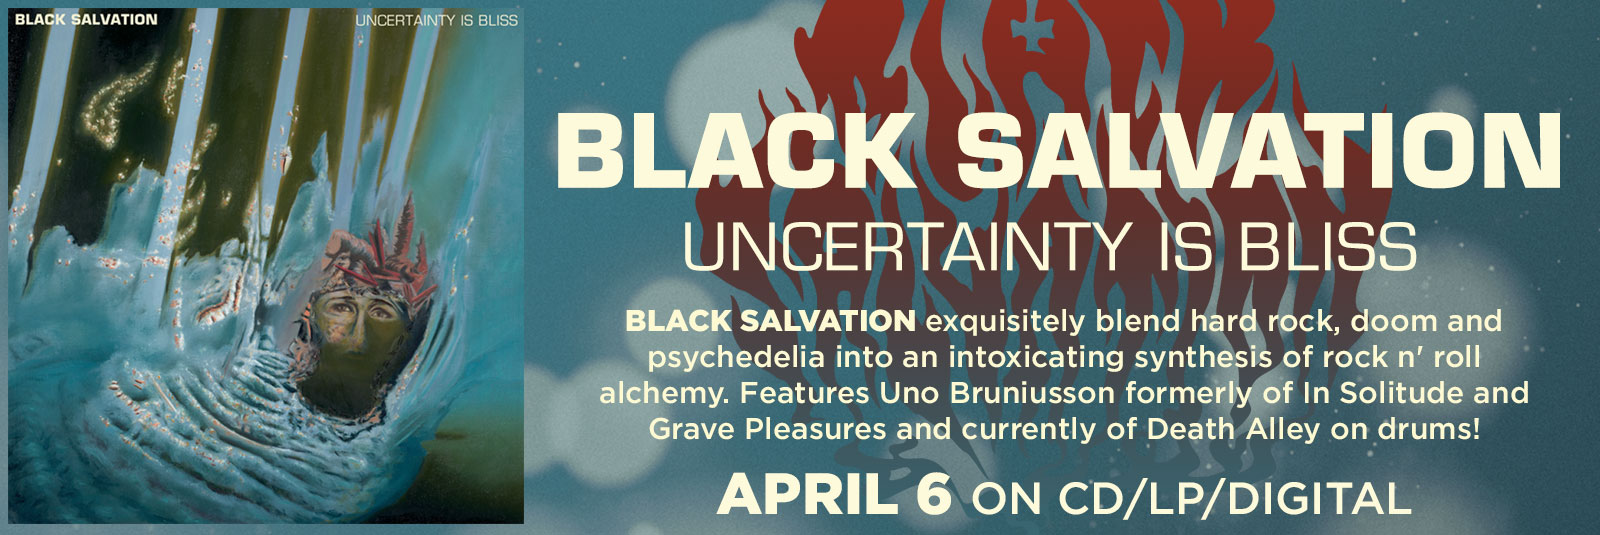 black+salvation+uncertainty+is+bliss